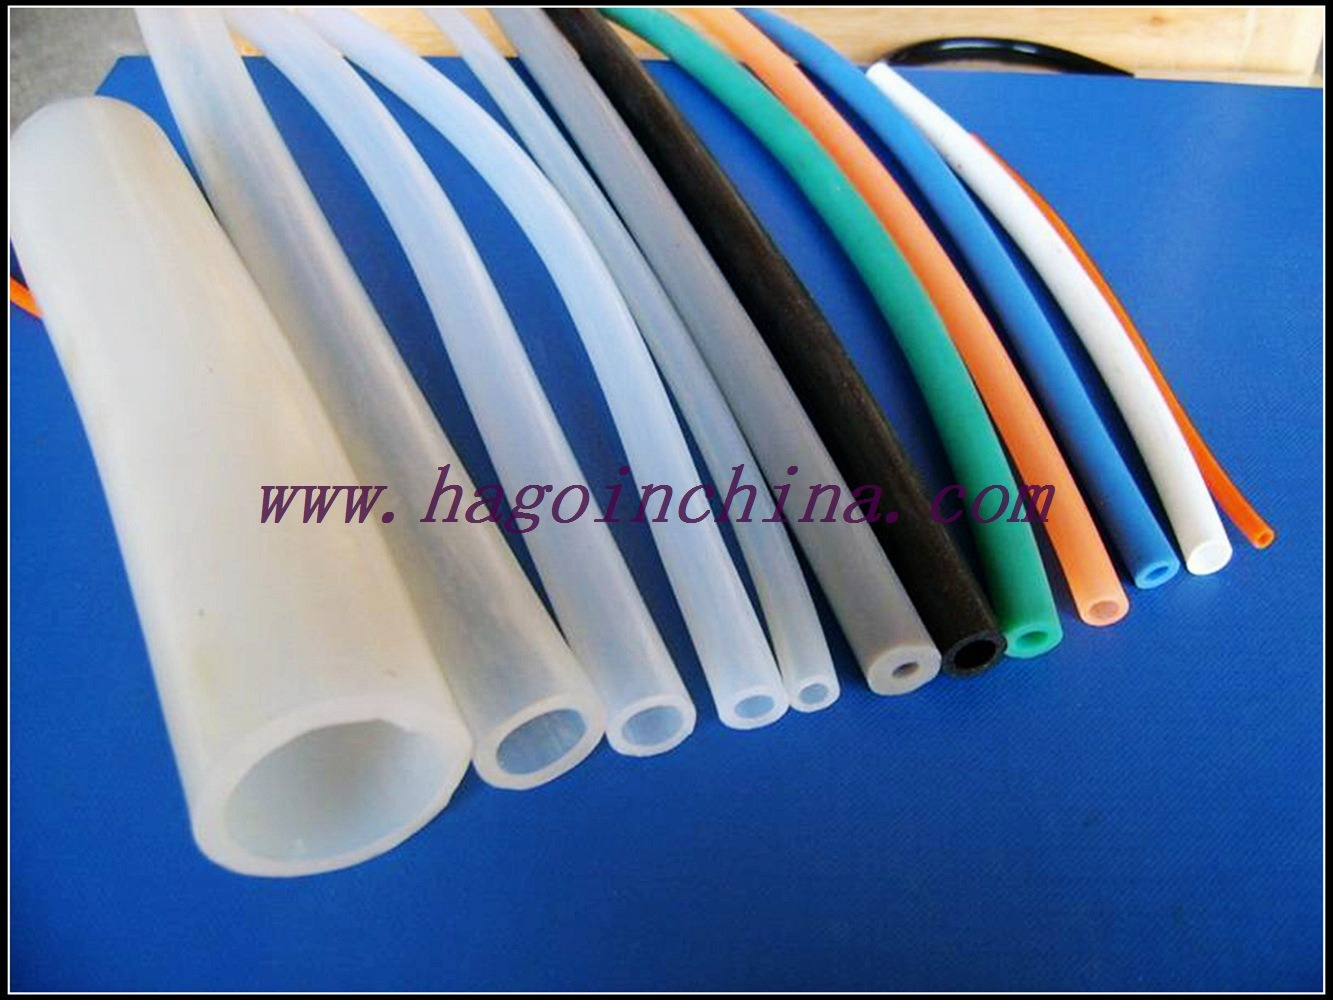 Qingdao Customized Silicone Rubber Tubing